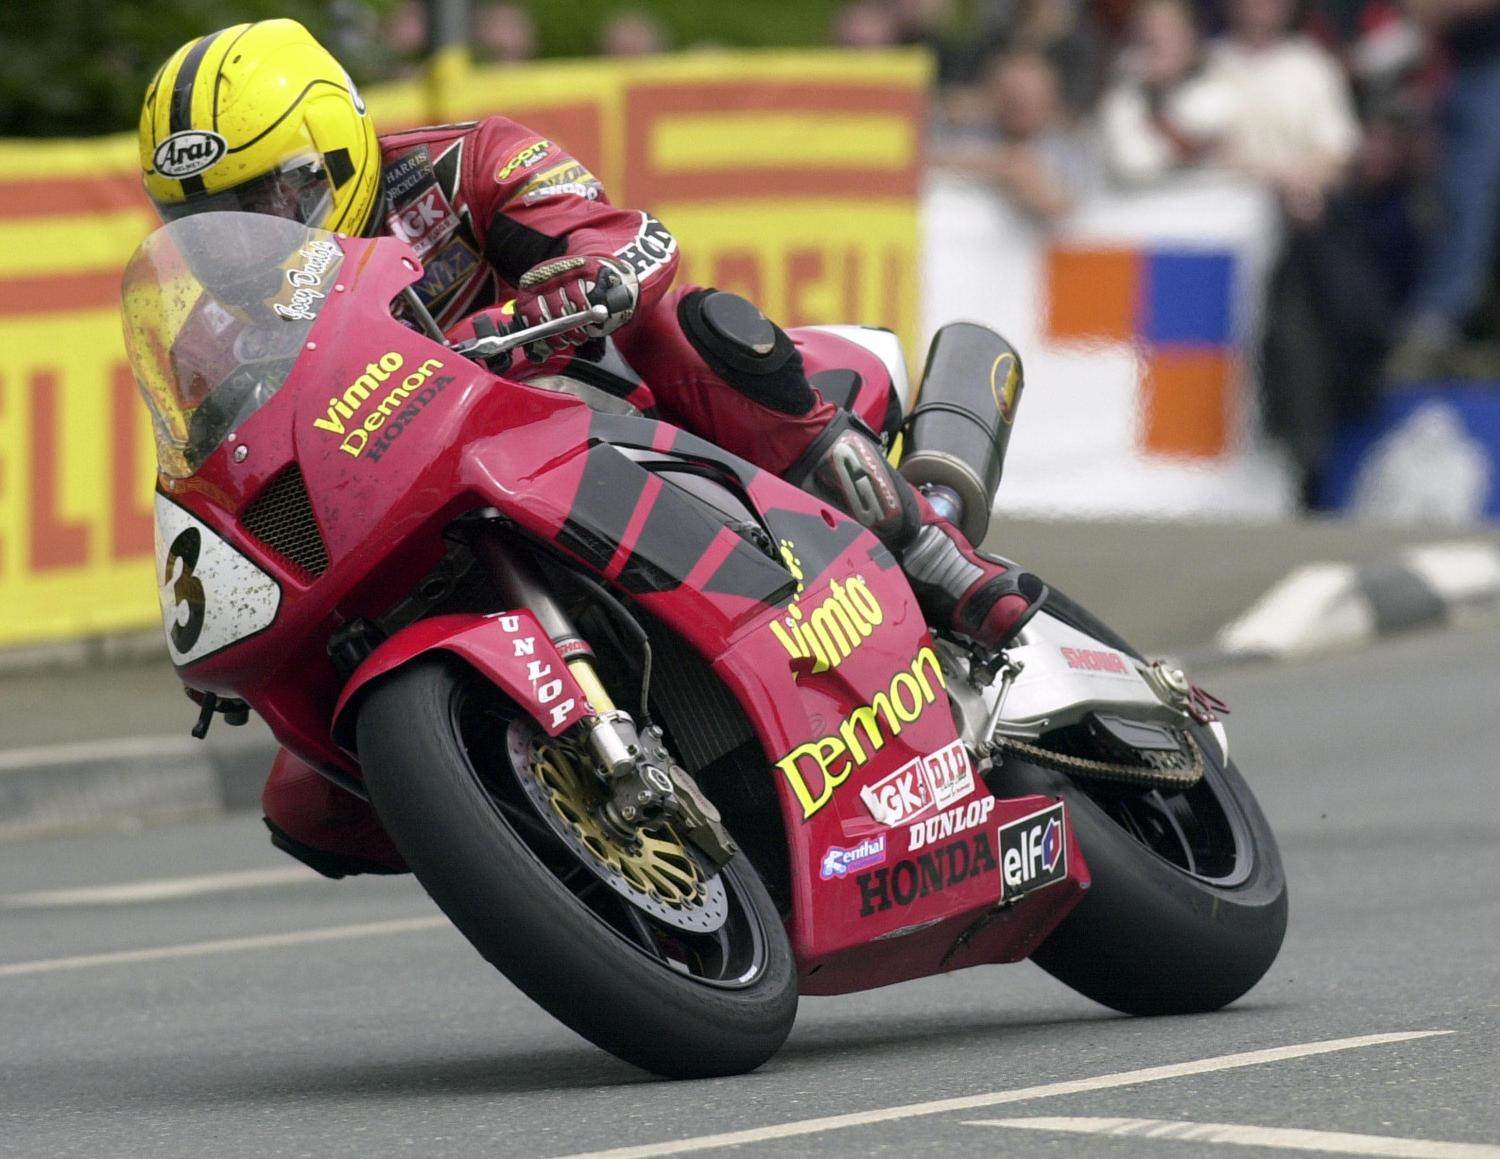 image of joey dunlop riding a honda cbr1000 rr fireblade motorcycle